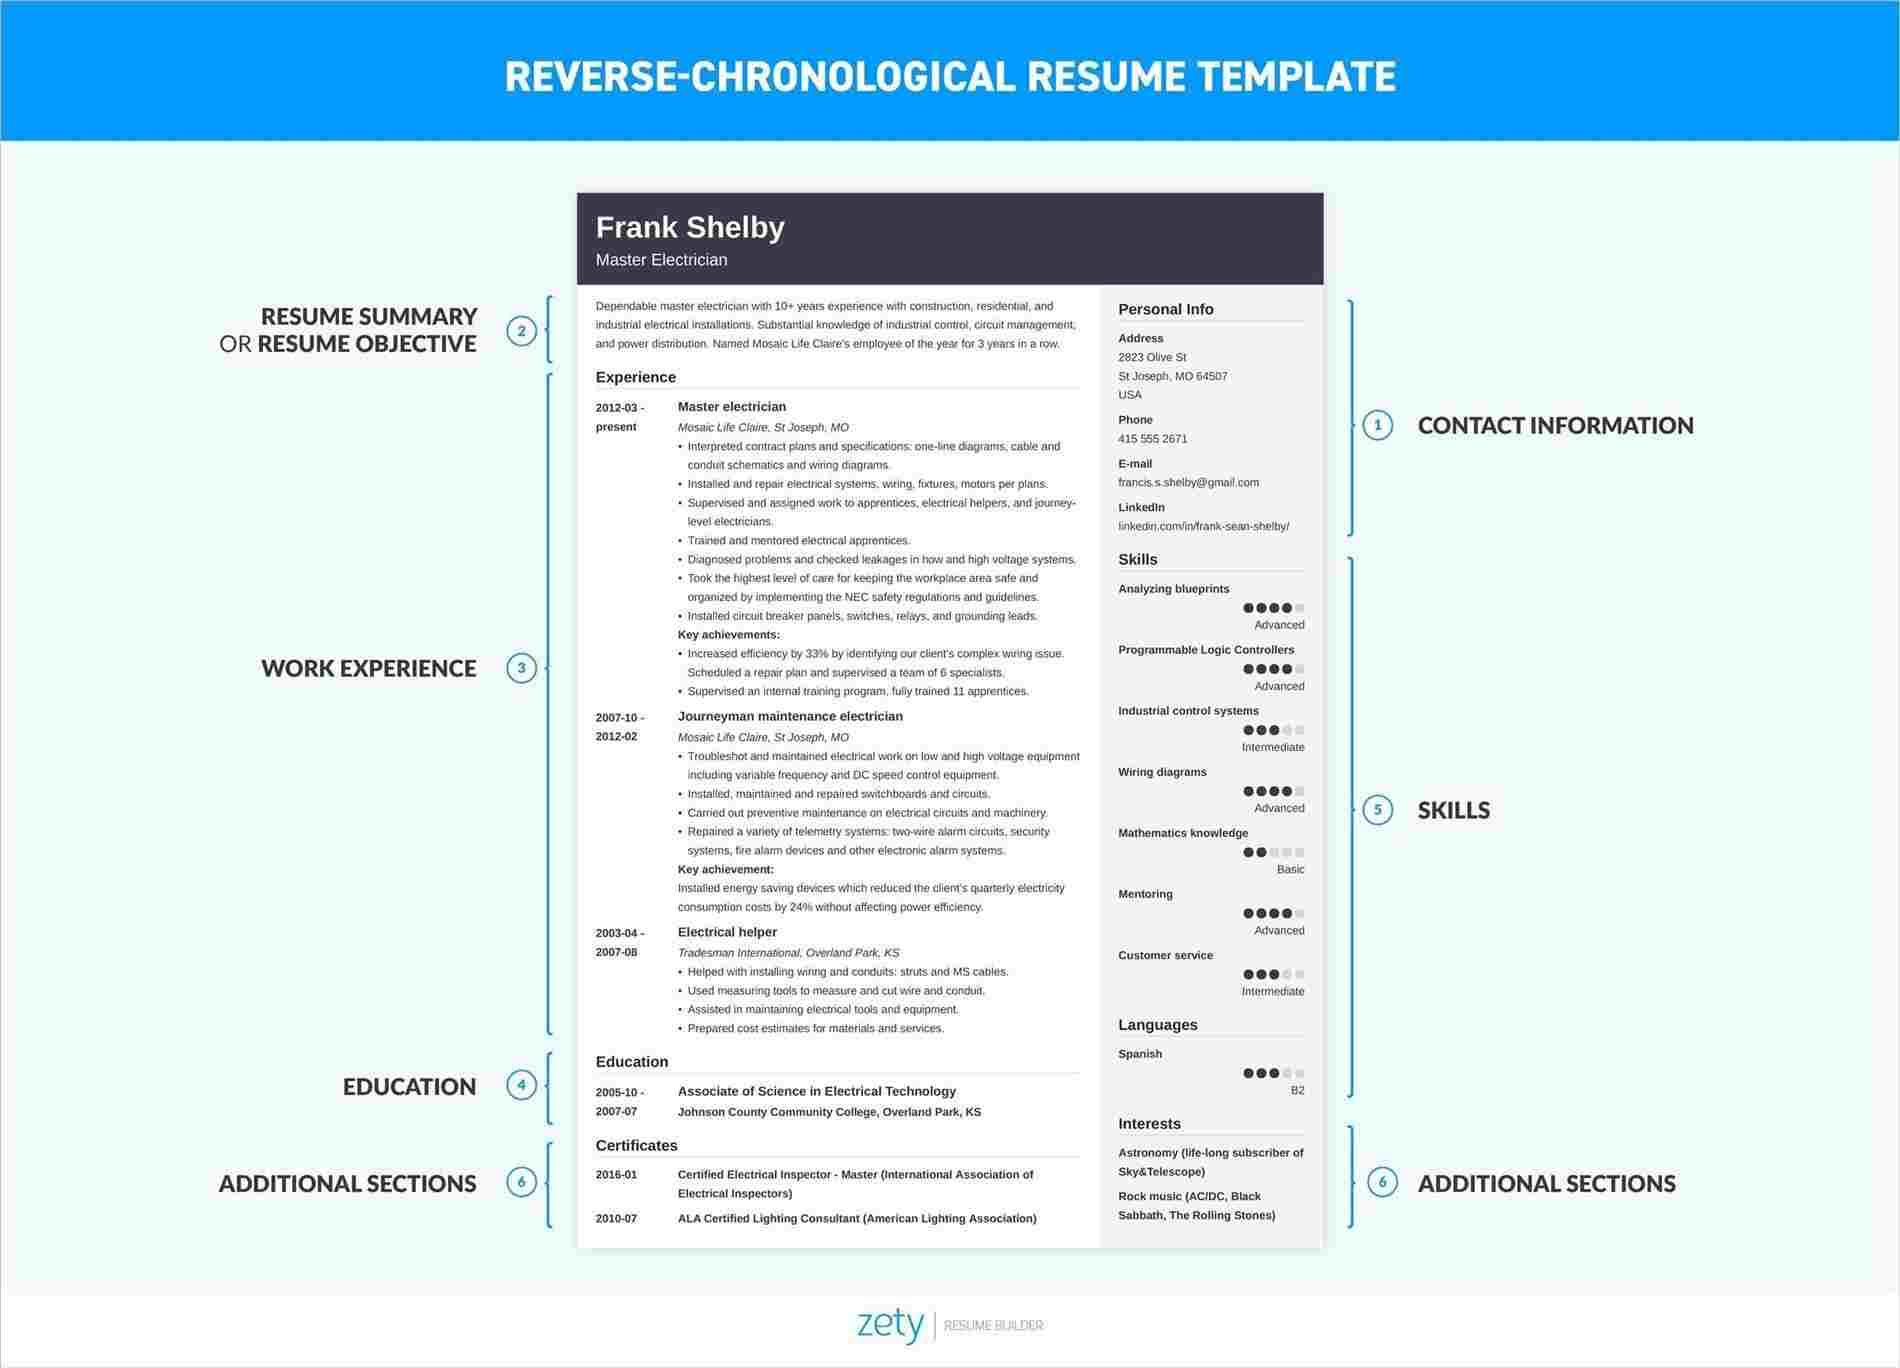 Cv Template Zety Resume Examples Chronological Resume Chronological Resume Template Best Resume Format